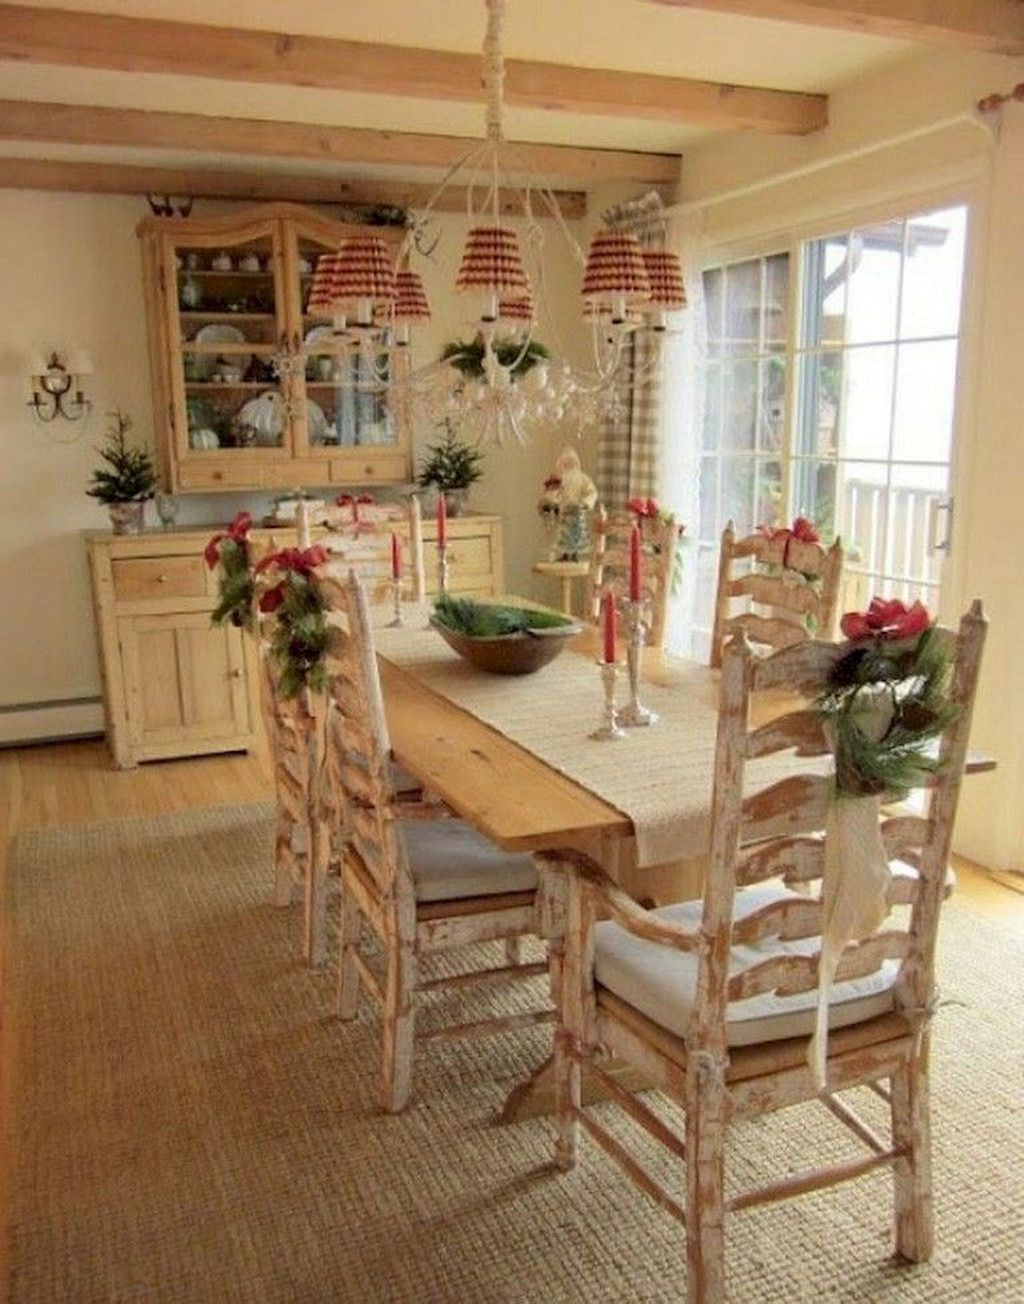 20 Amazing French Country Dining Room Table Decor Ideas Coodecor French Country Dining Room French Country Dining Room Decor French Country Dining Room Furniture